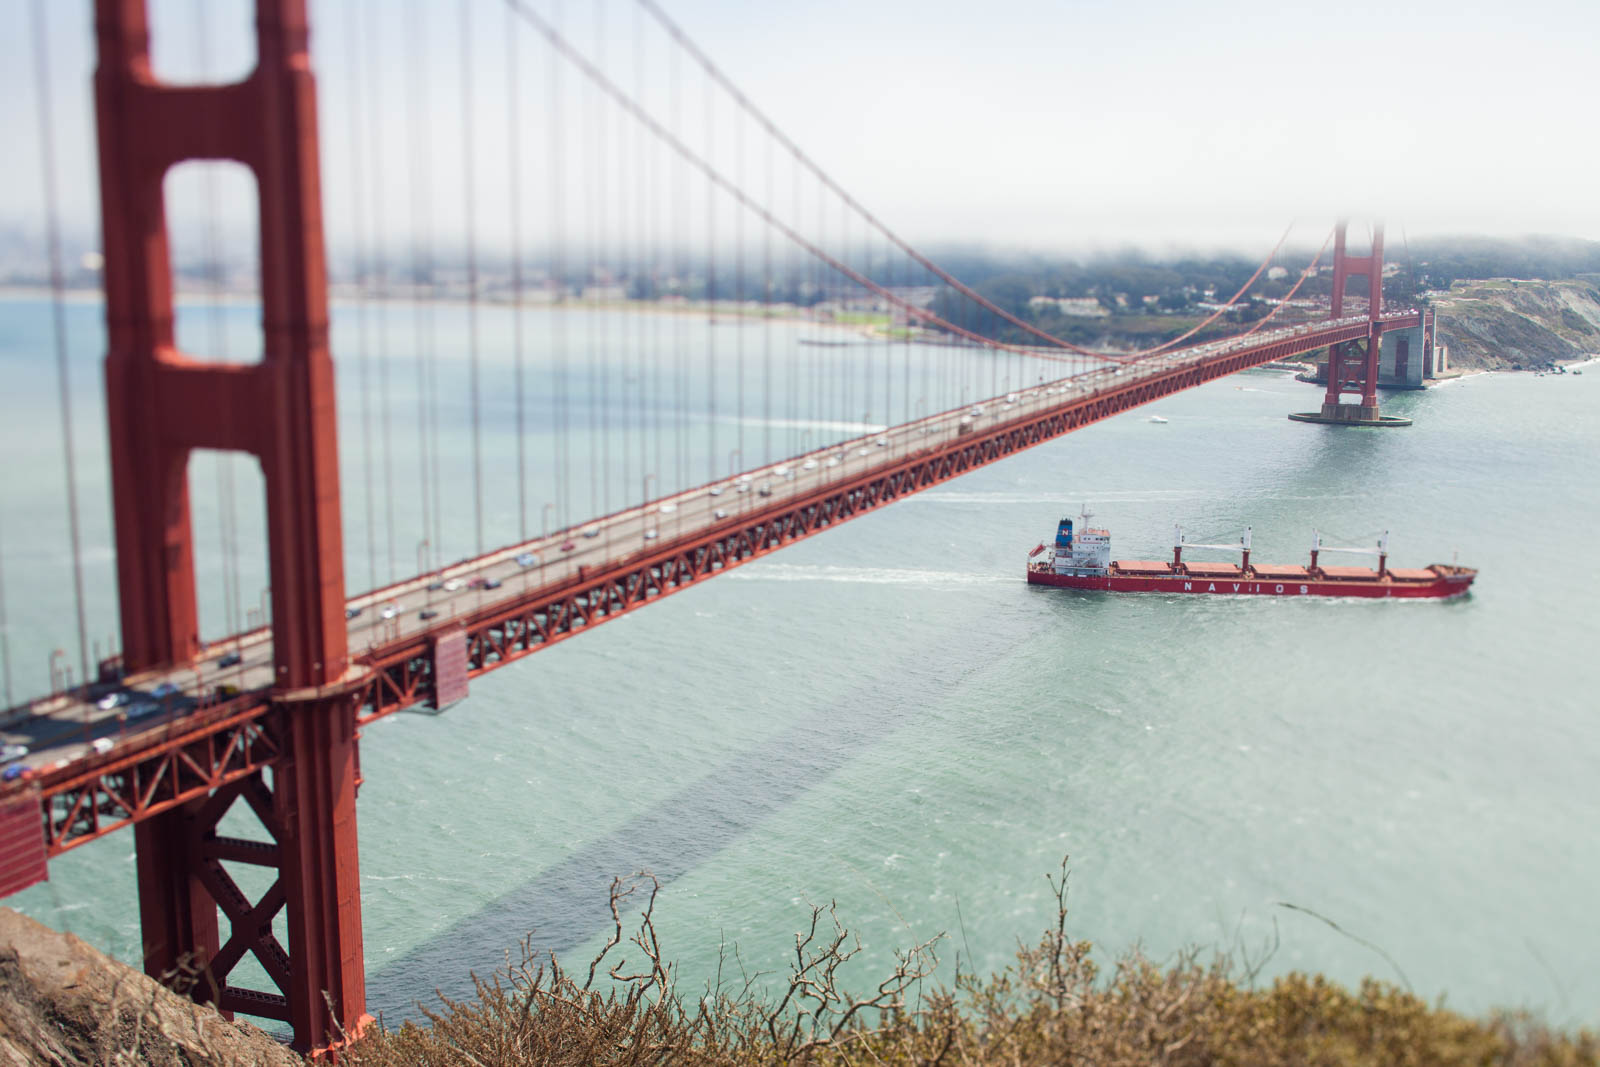 A freighter exits the San Francisco Bay. ©Kevin Day/Opening a Bottle